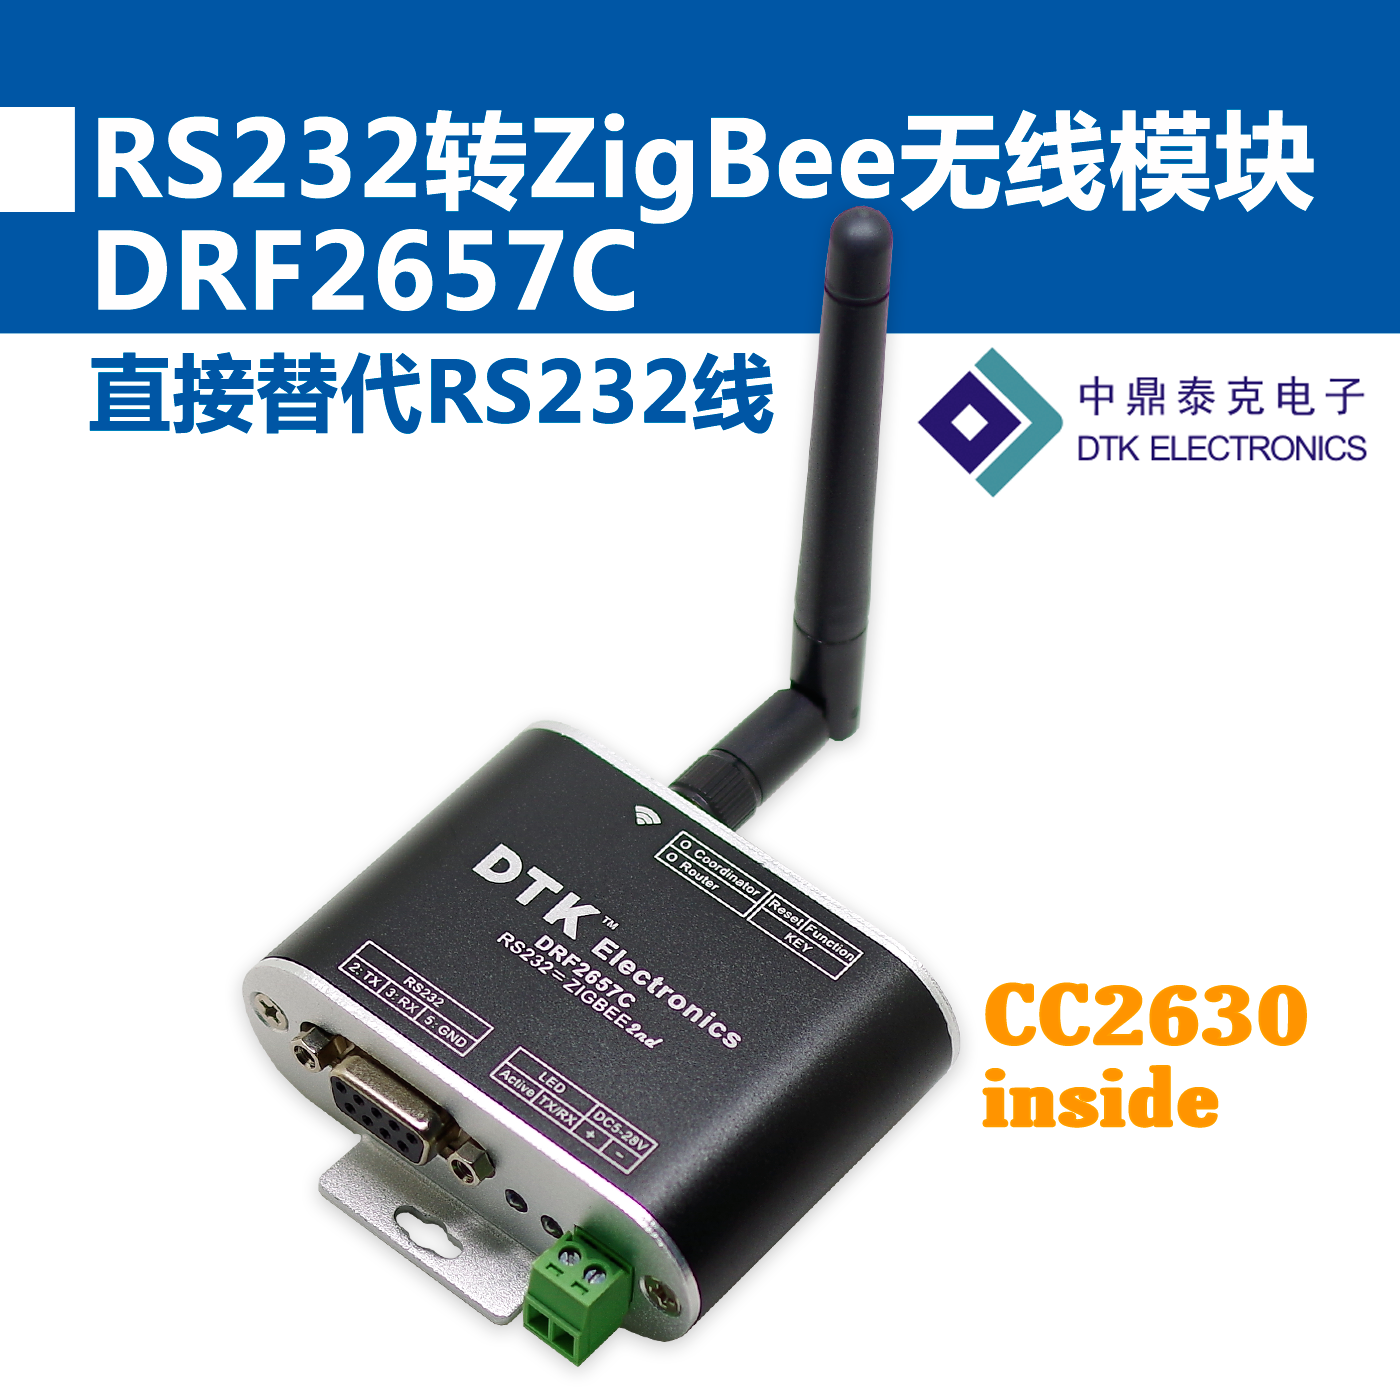 RS232 Switch to ZigBee Wireless Module (1.6 Km Transmission, CC2630 Chip, Far Beyond CC2530) zigbee cc2530 wireless transmission module rs485 to zigbee board development board industrial grade